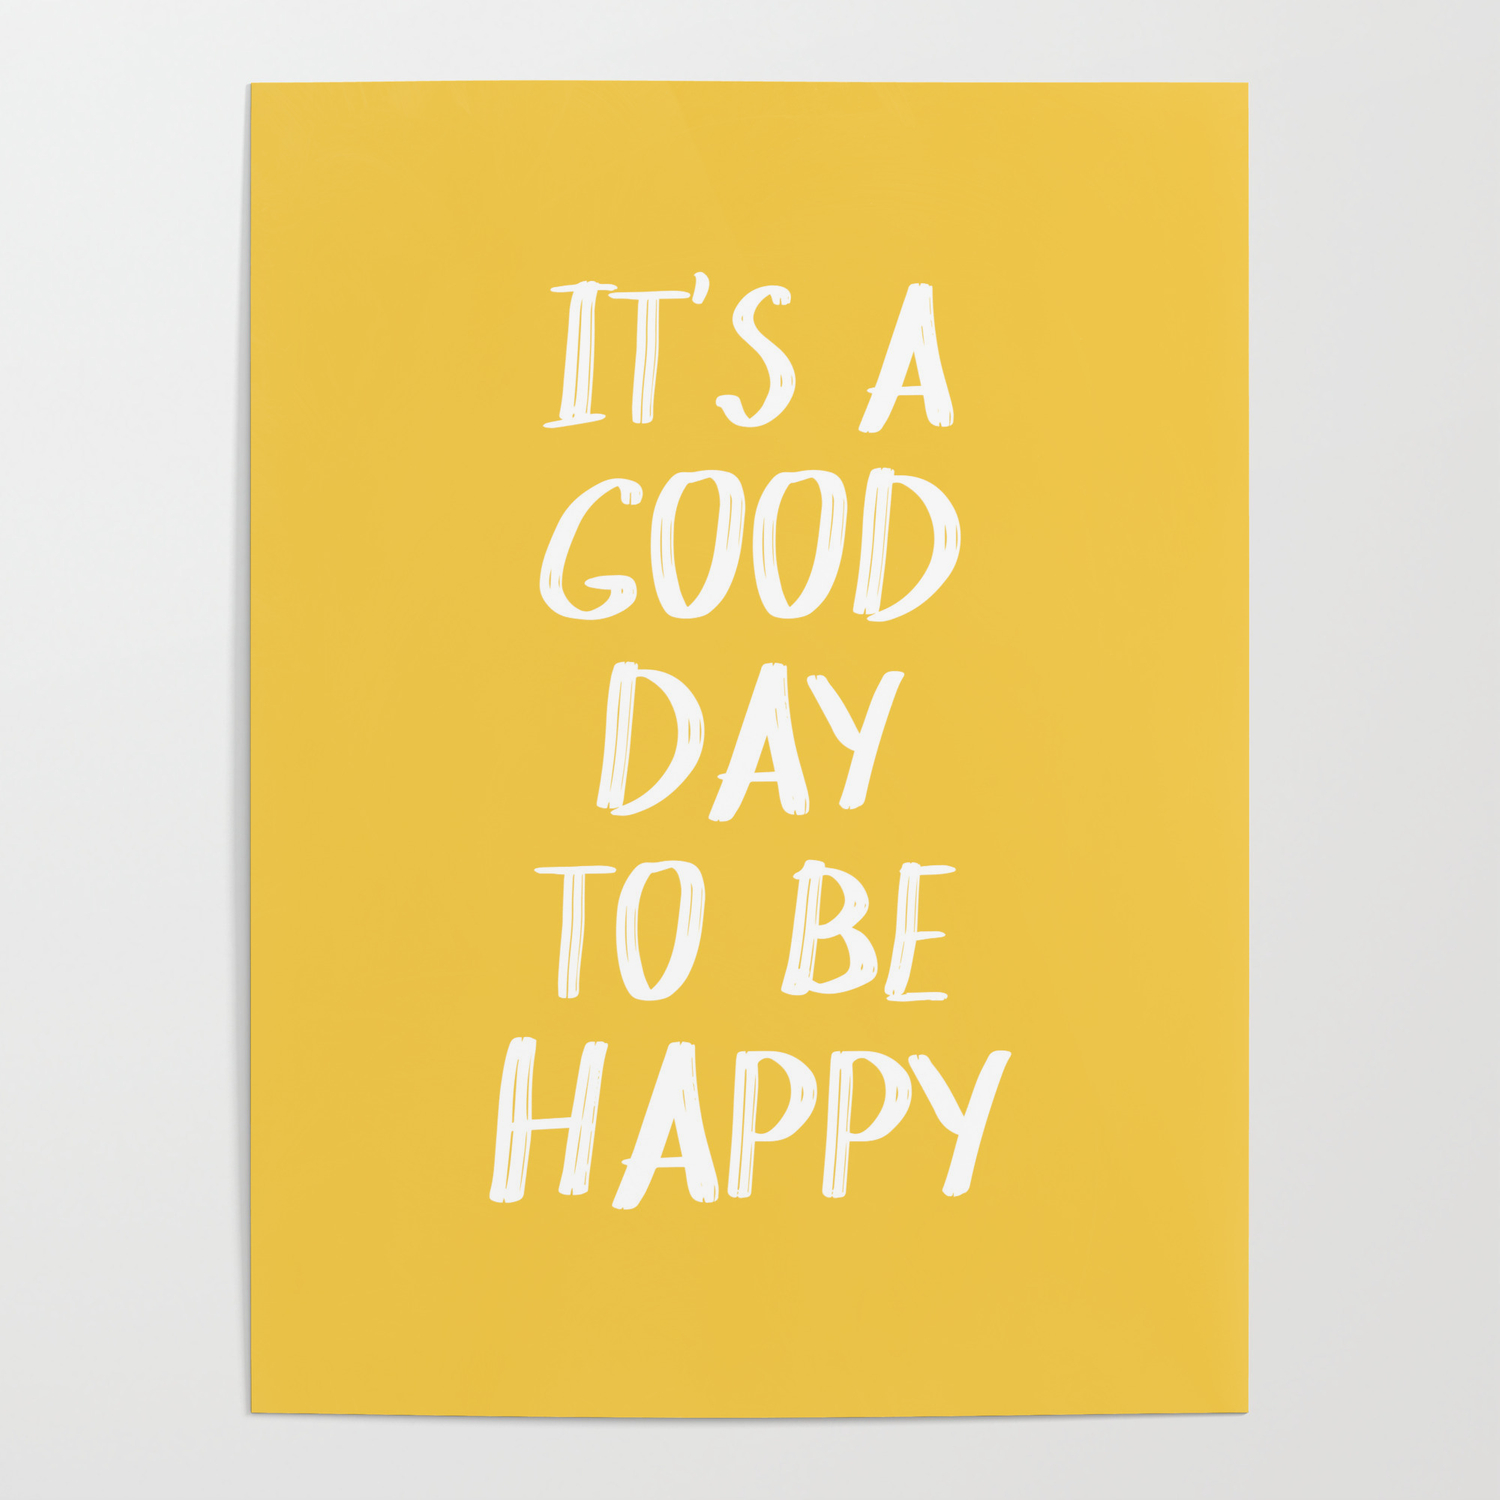 It's a Good Day to Be Happy - Yellow Poster by blueskywhimsy